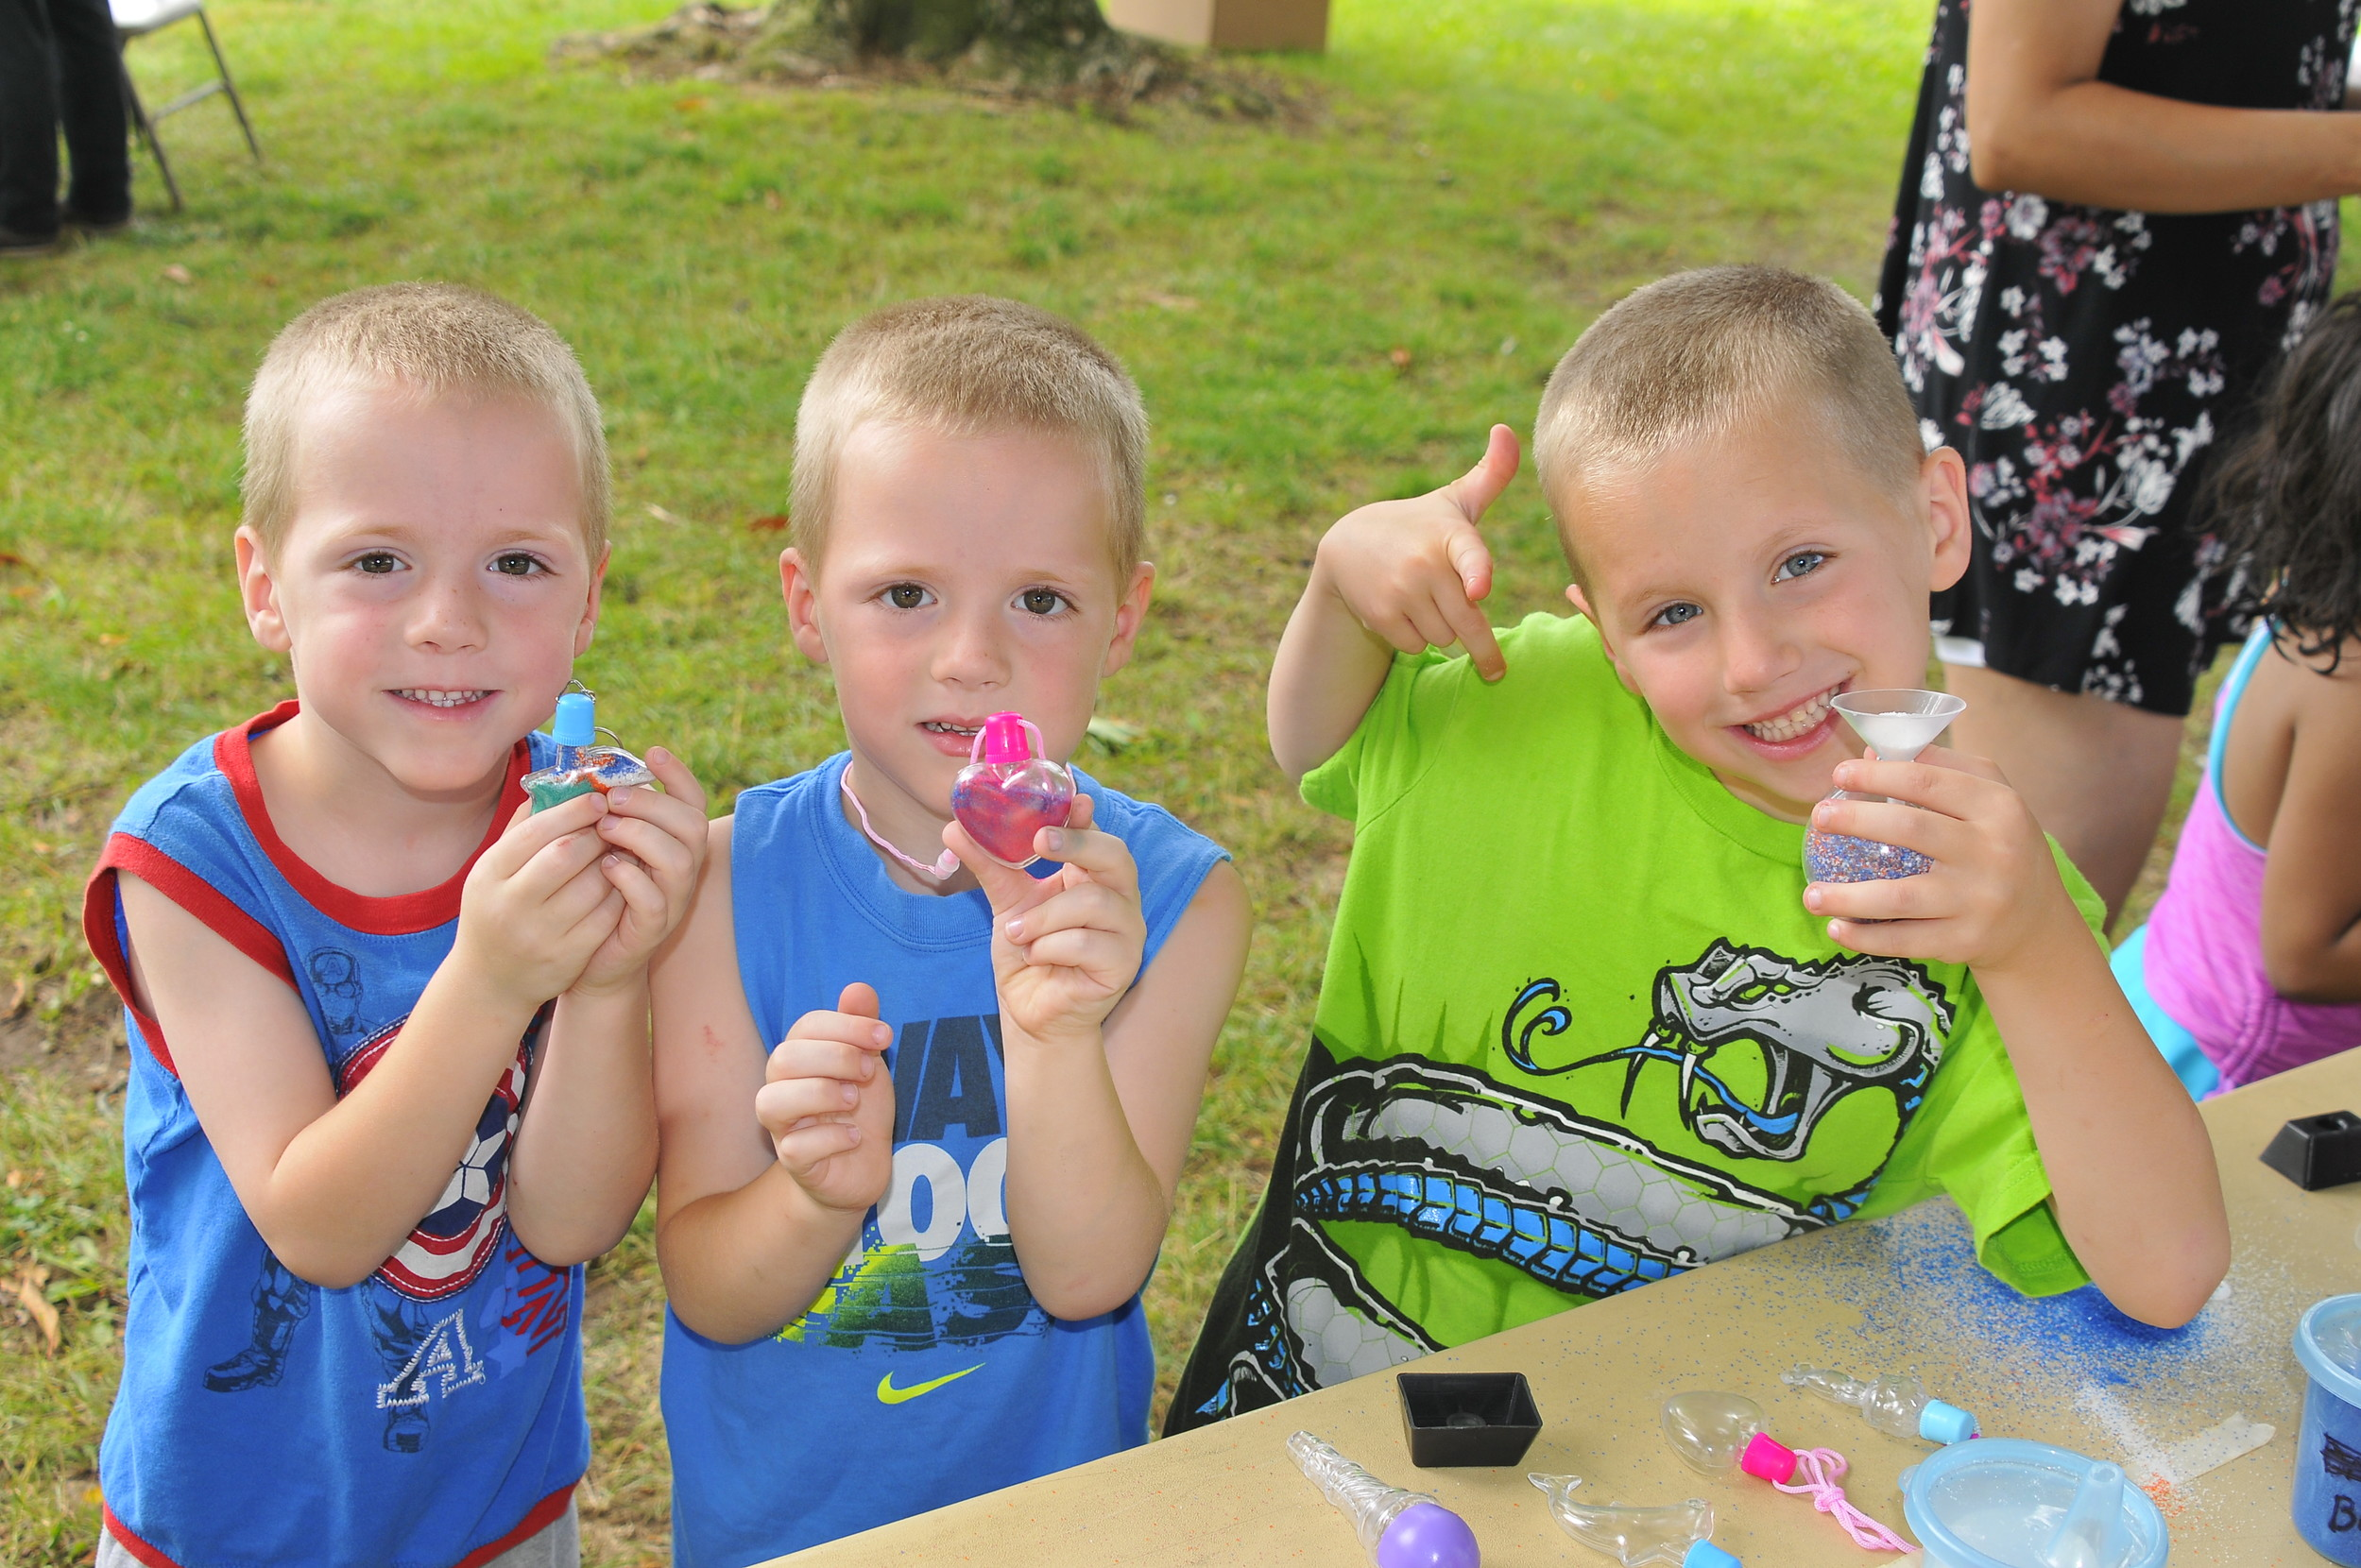 Blake, left, Kameron and Landon Tamberelli had a fun time creating sand art at the 20th annual Lazy Days of Summer festival in Levittown.